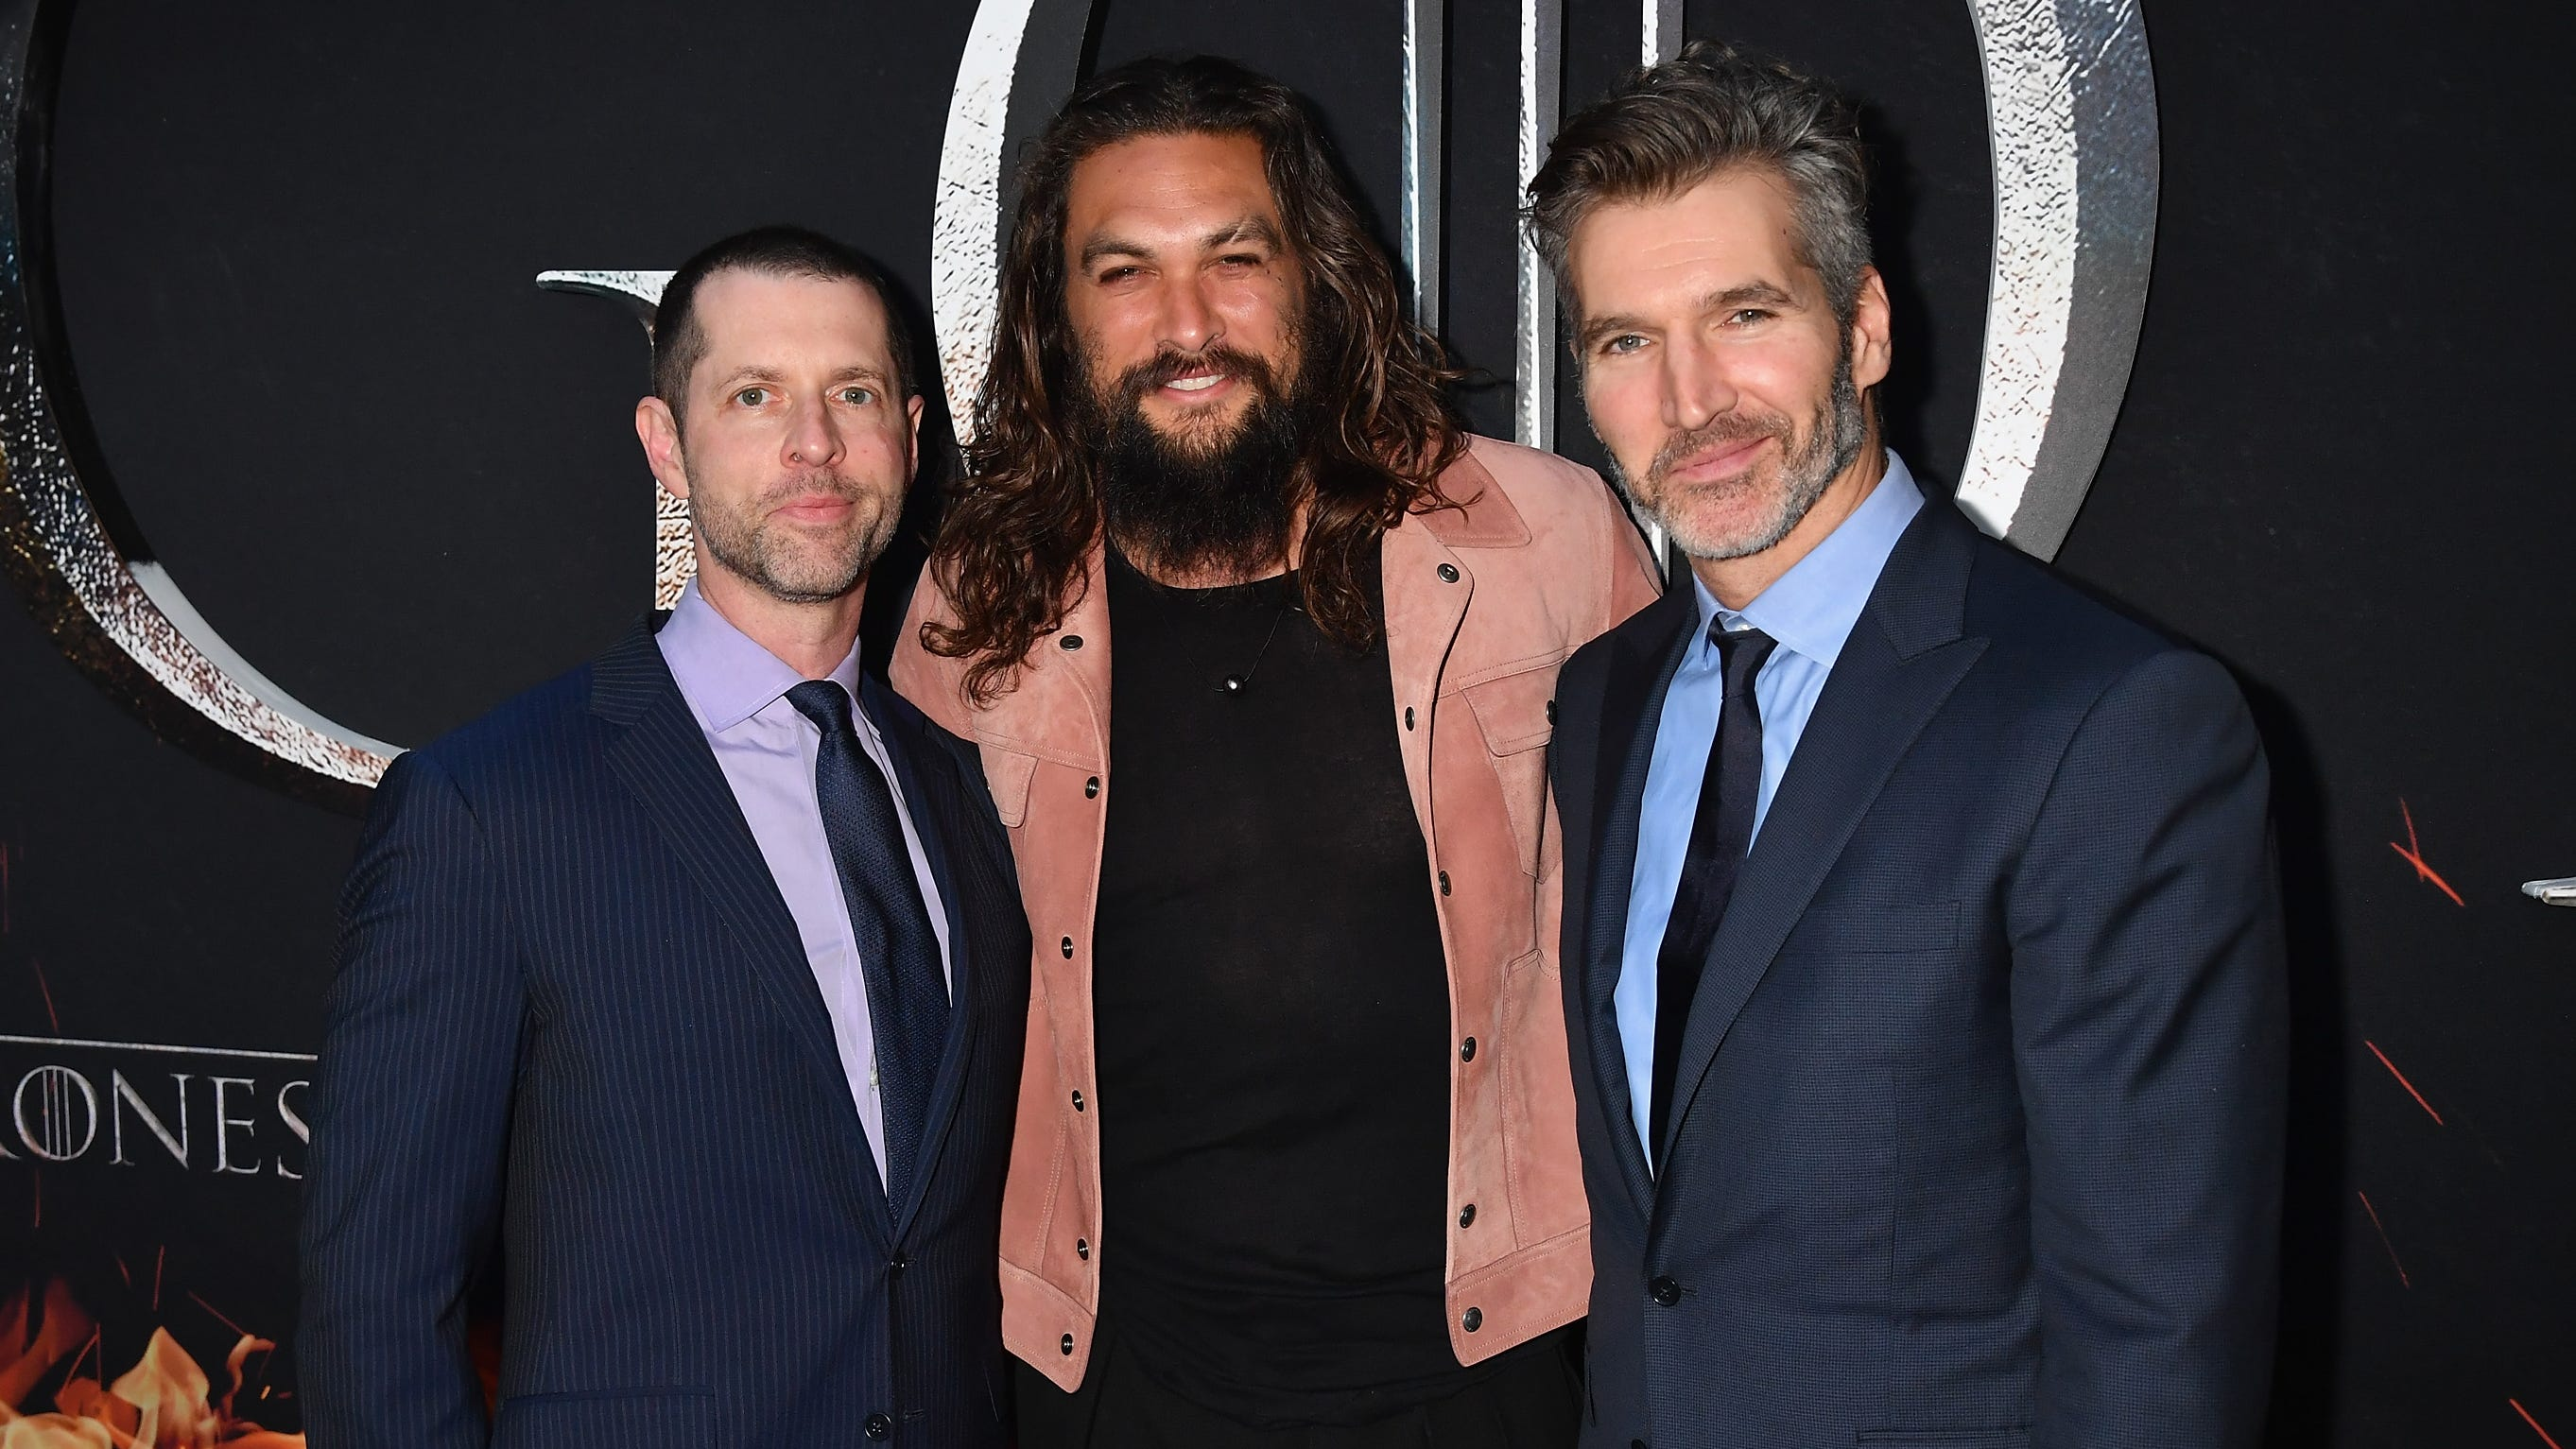 """We're guessing Jason Momoa isn't happy with """"Game of Thrones"""" co-creators D.B Weiss, left, and David Benioff, either, since they're the ones who wrote Daenerys death."""